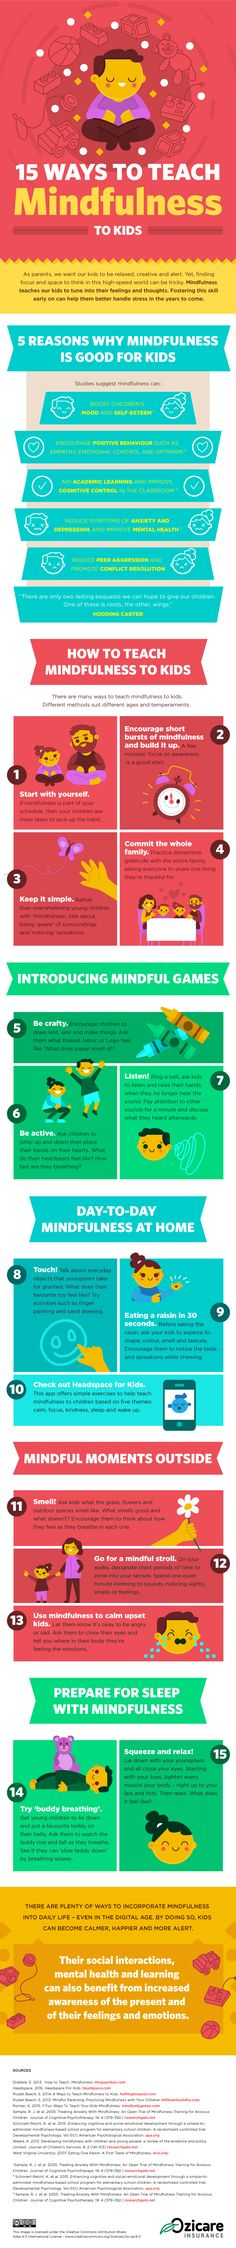 How to teach your kids to be mindful, including the benefits to them, mindfulness games to play, and more